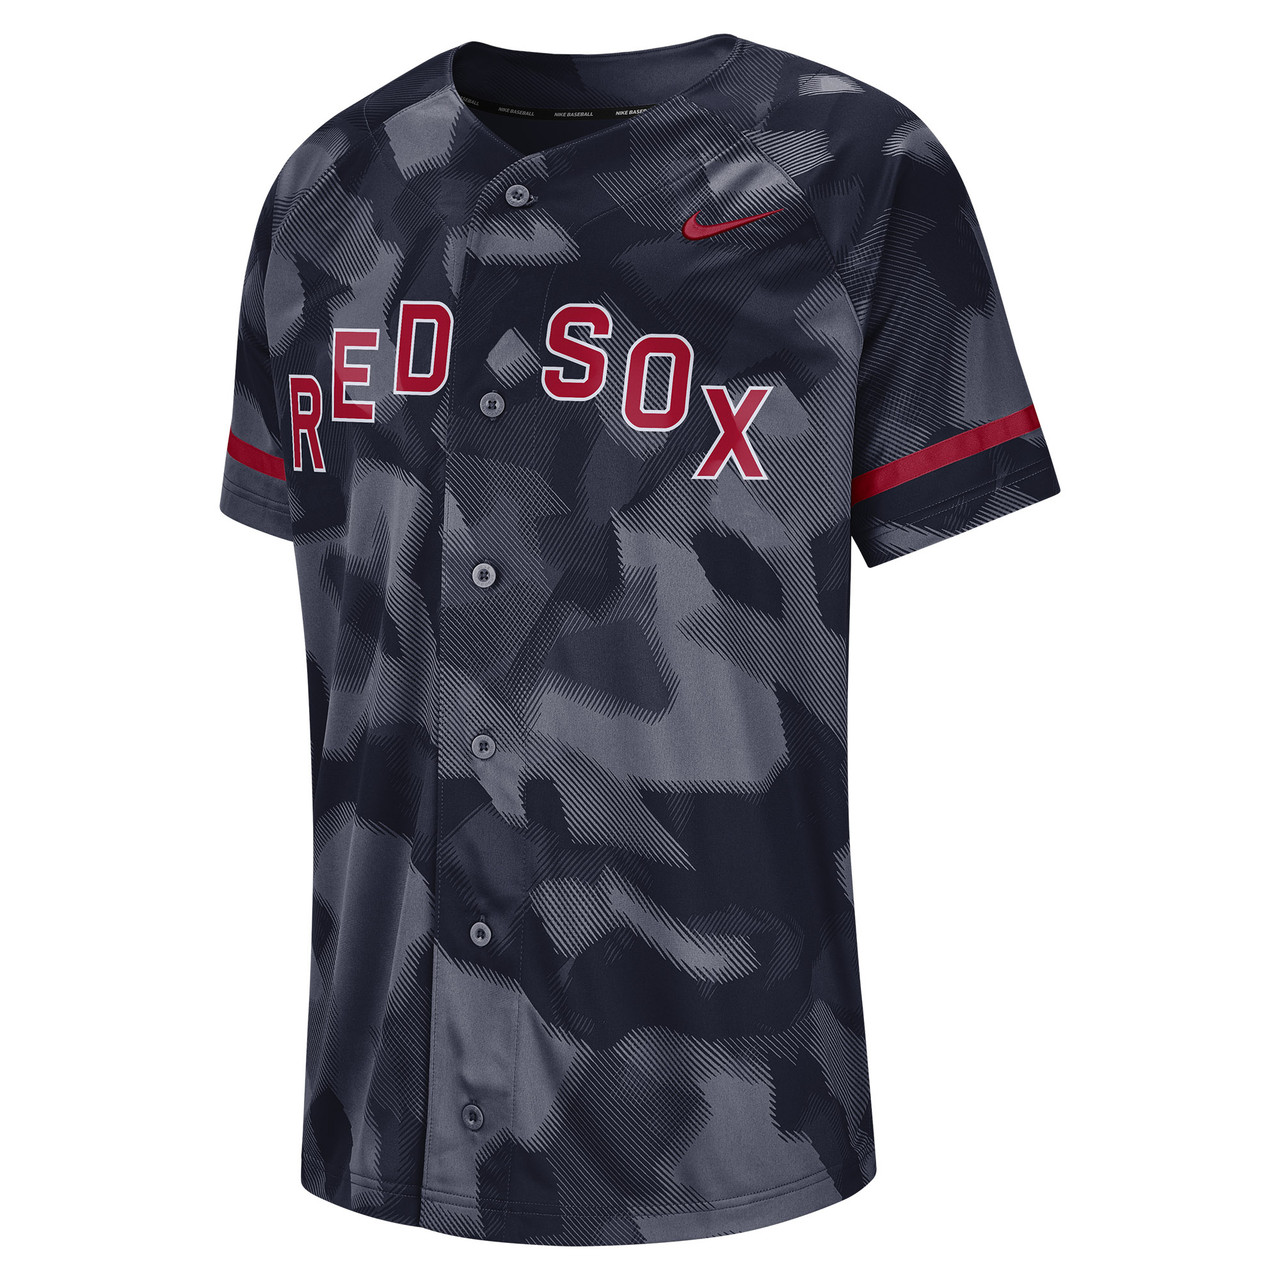 competitive price 5a5eb 7b3ce Men's Nike MLB Boston Red Sox Dry Jersey Top